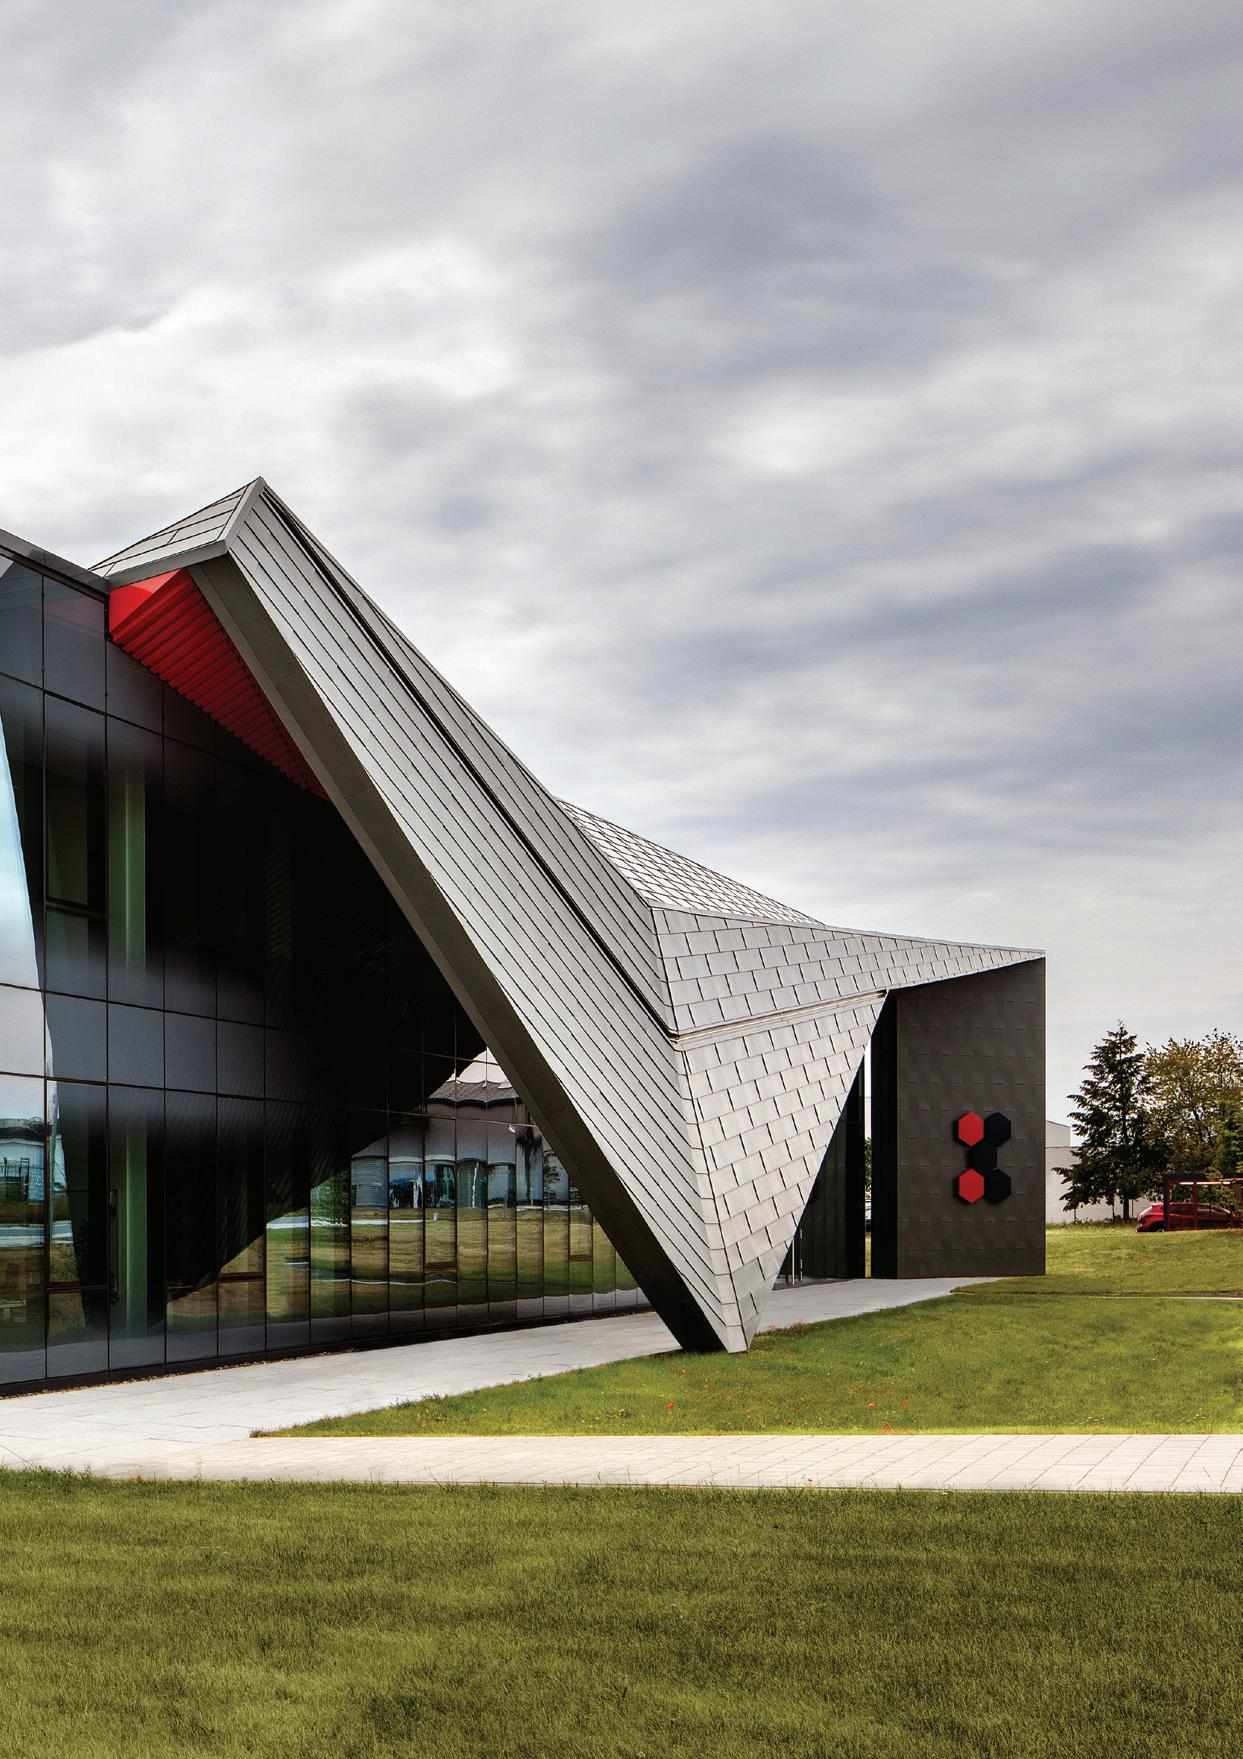 Page 30 of German Pharma company HQ inspired by bold, futuristic design